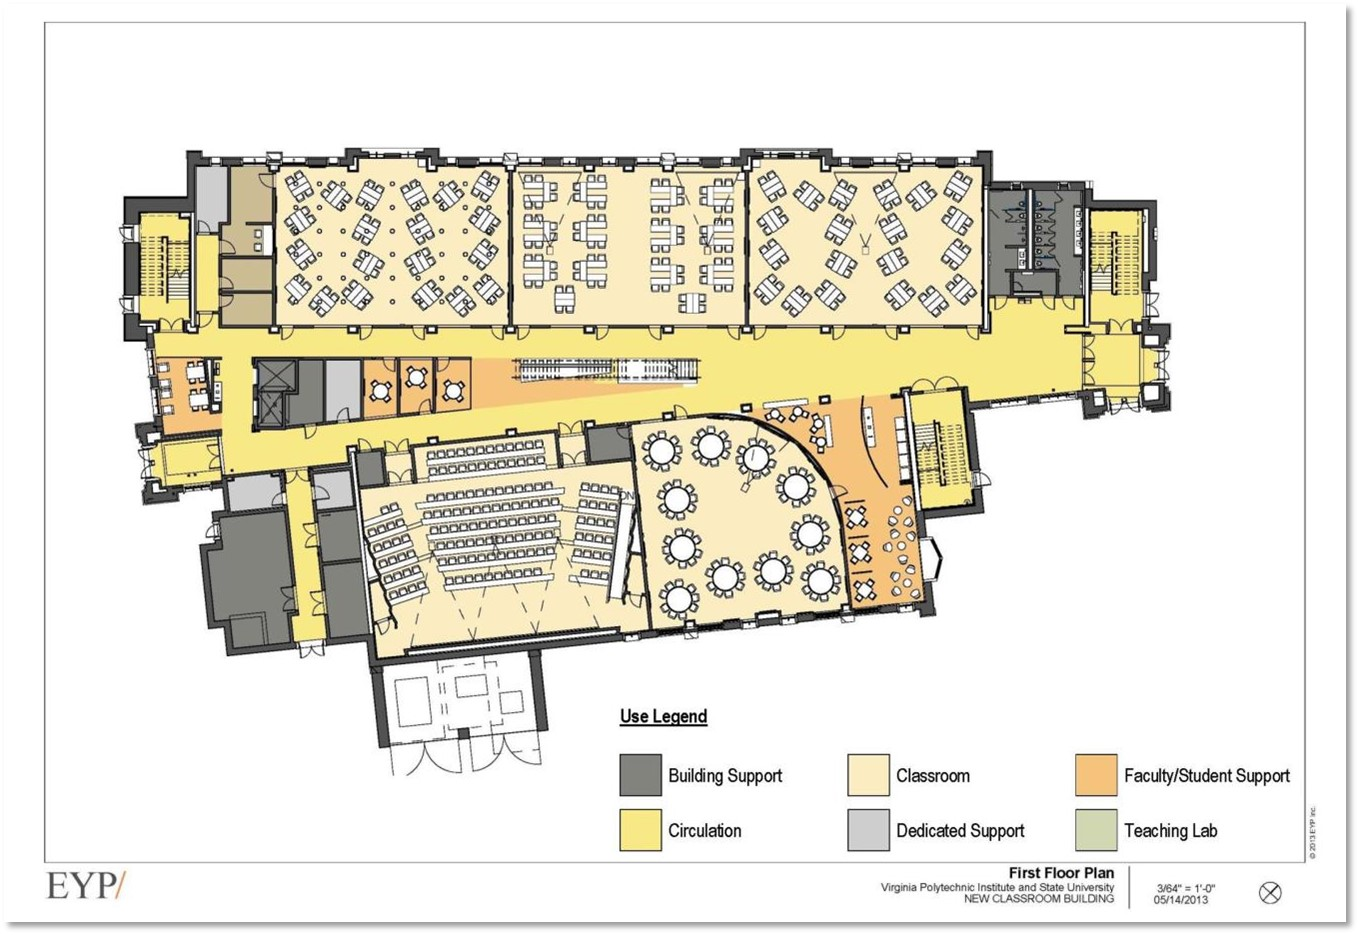 Classroom Building Design : New classroom building to provide additional innovative